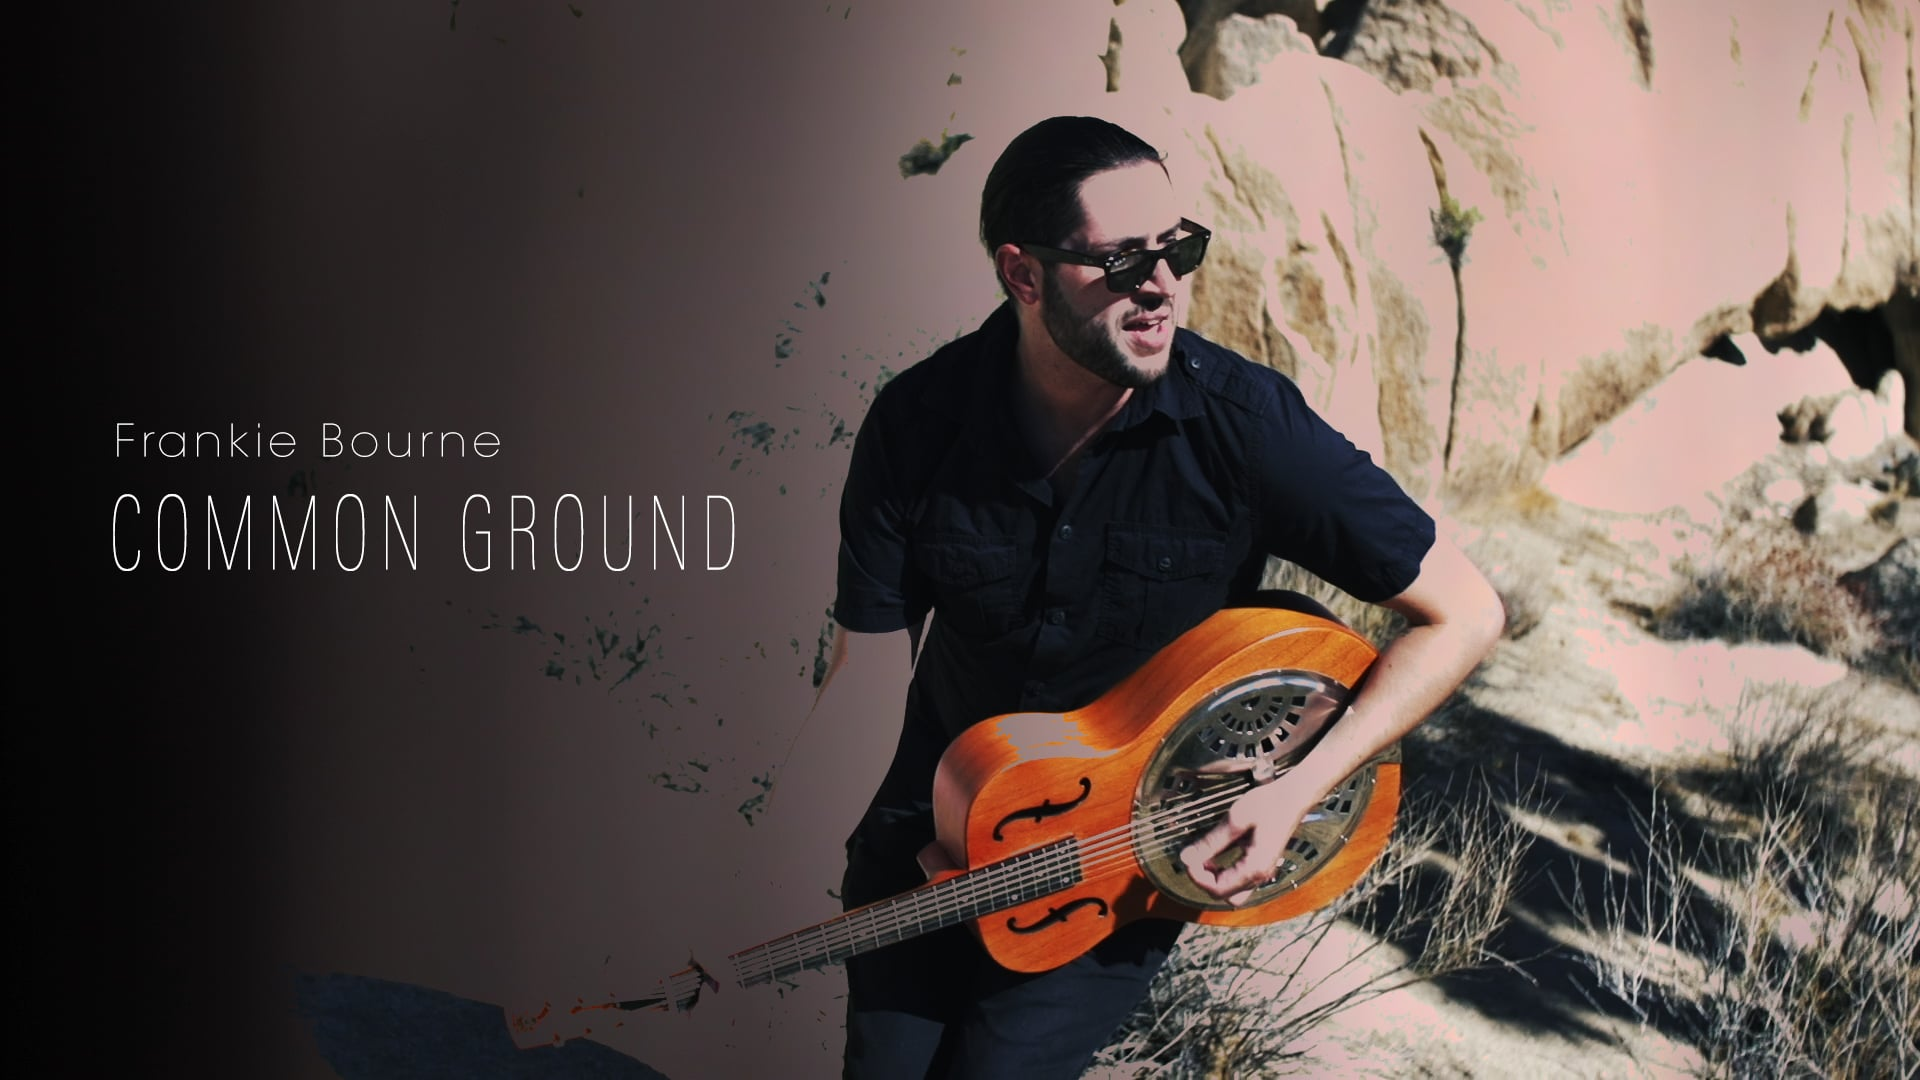 """Frankie Bourne """"Common Ground"""" Official Music Video 2015"""